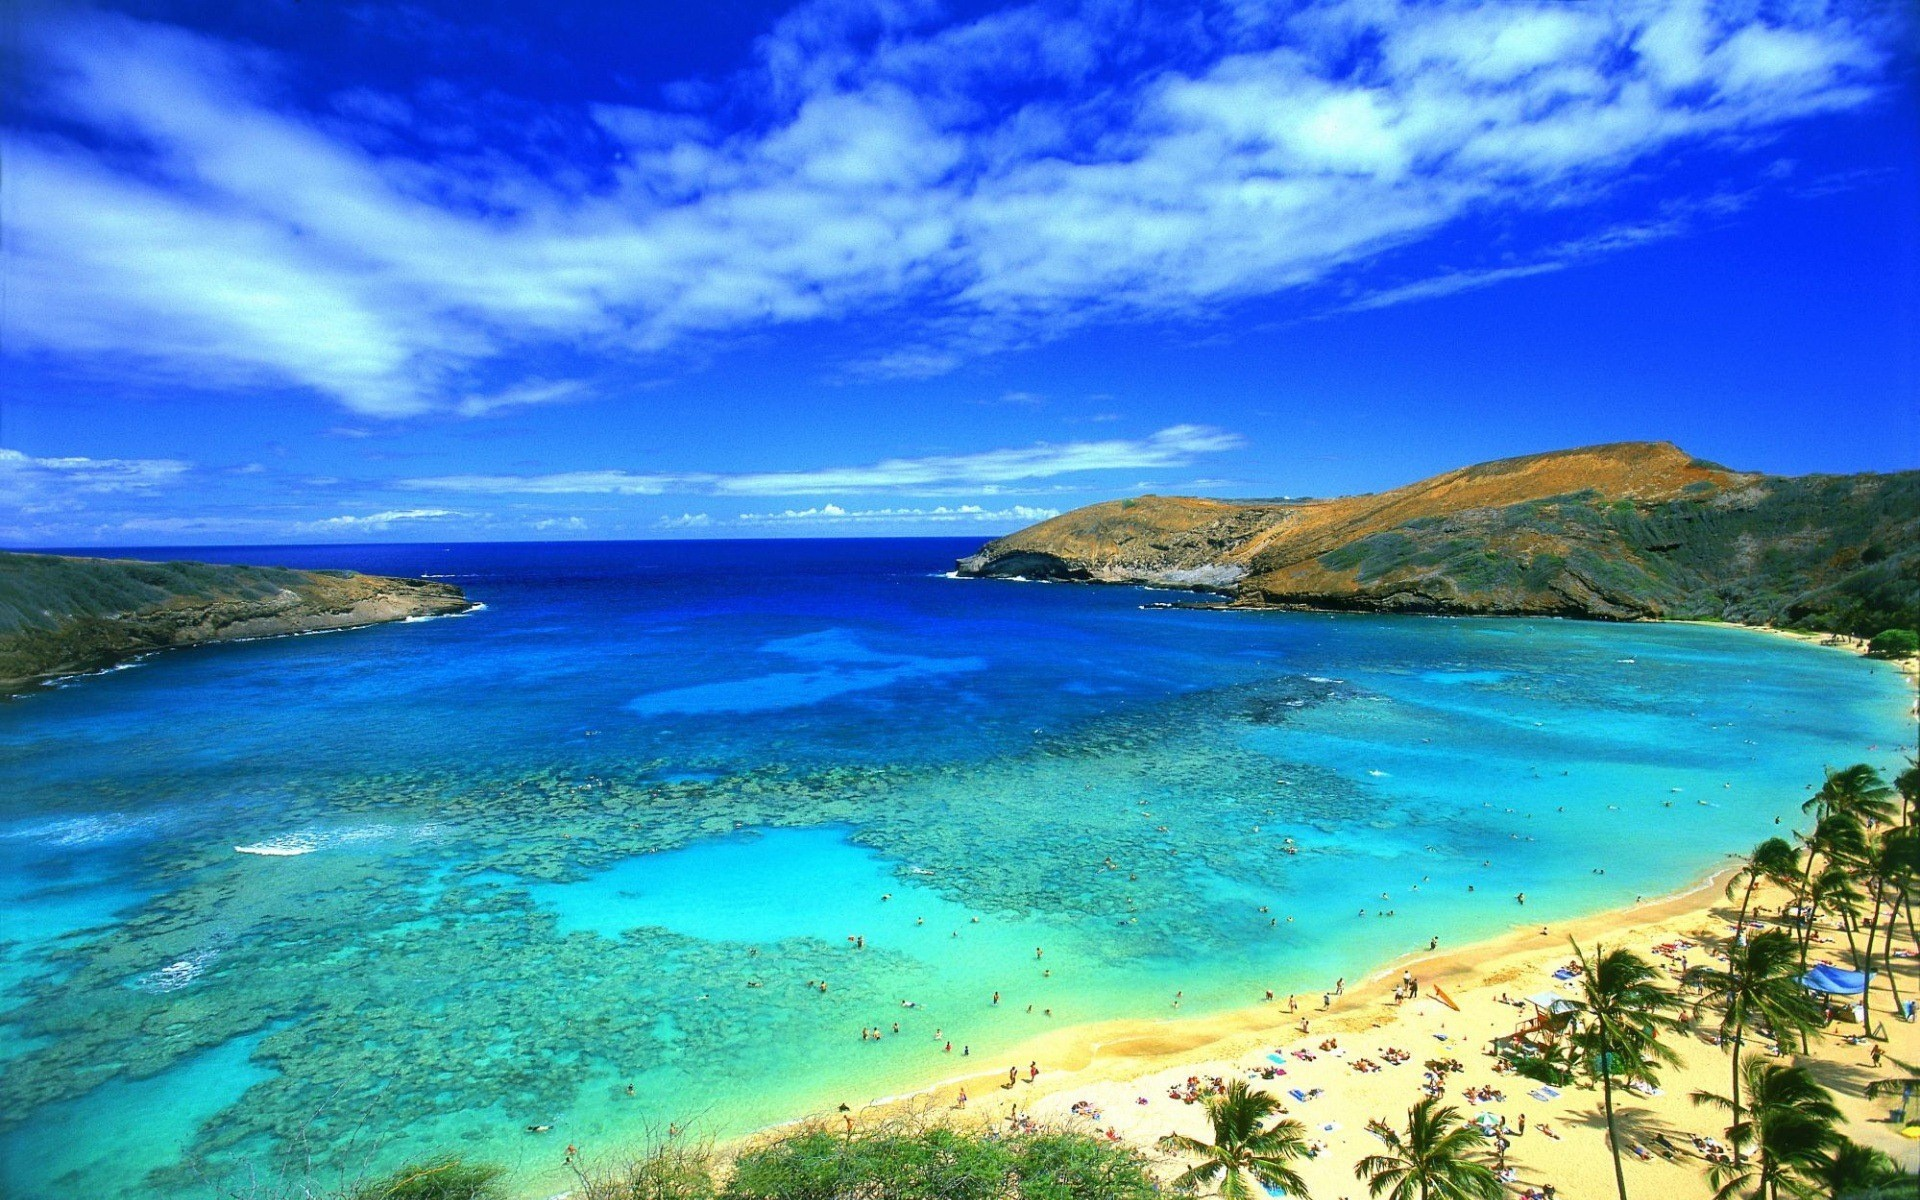 Astonishing Hawaii Wallpaper: Stunning Hawaii Beach Desktop Wallpaper 1920x1200px